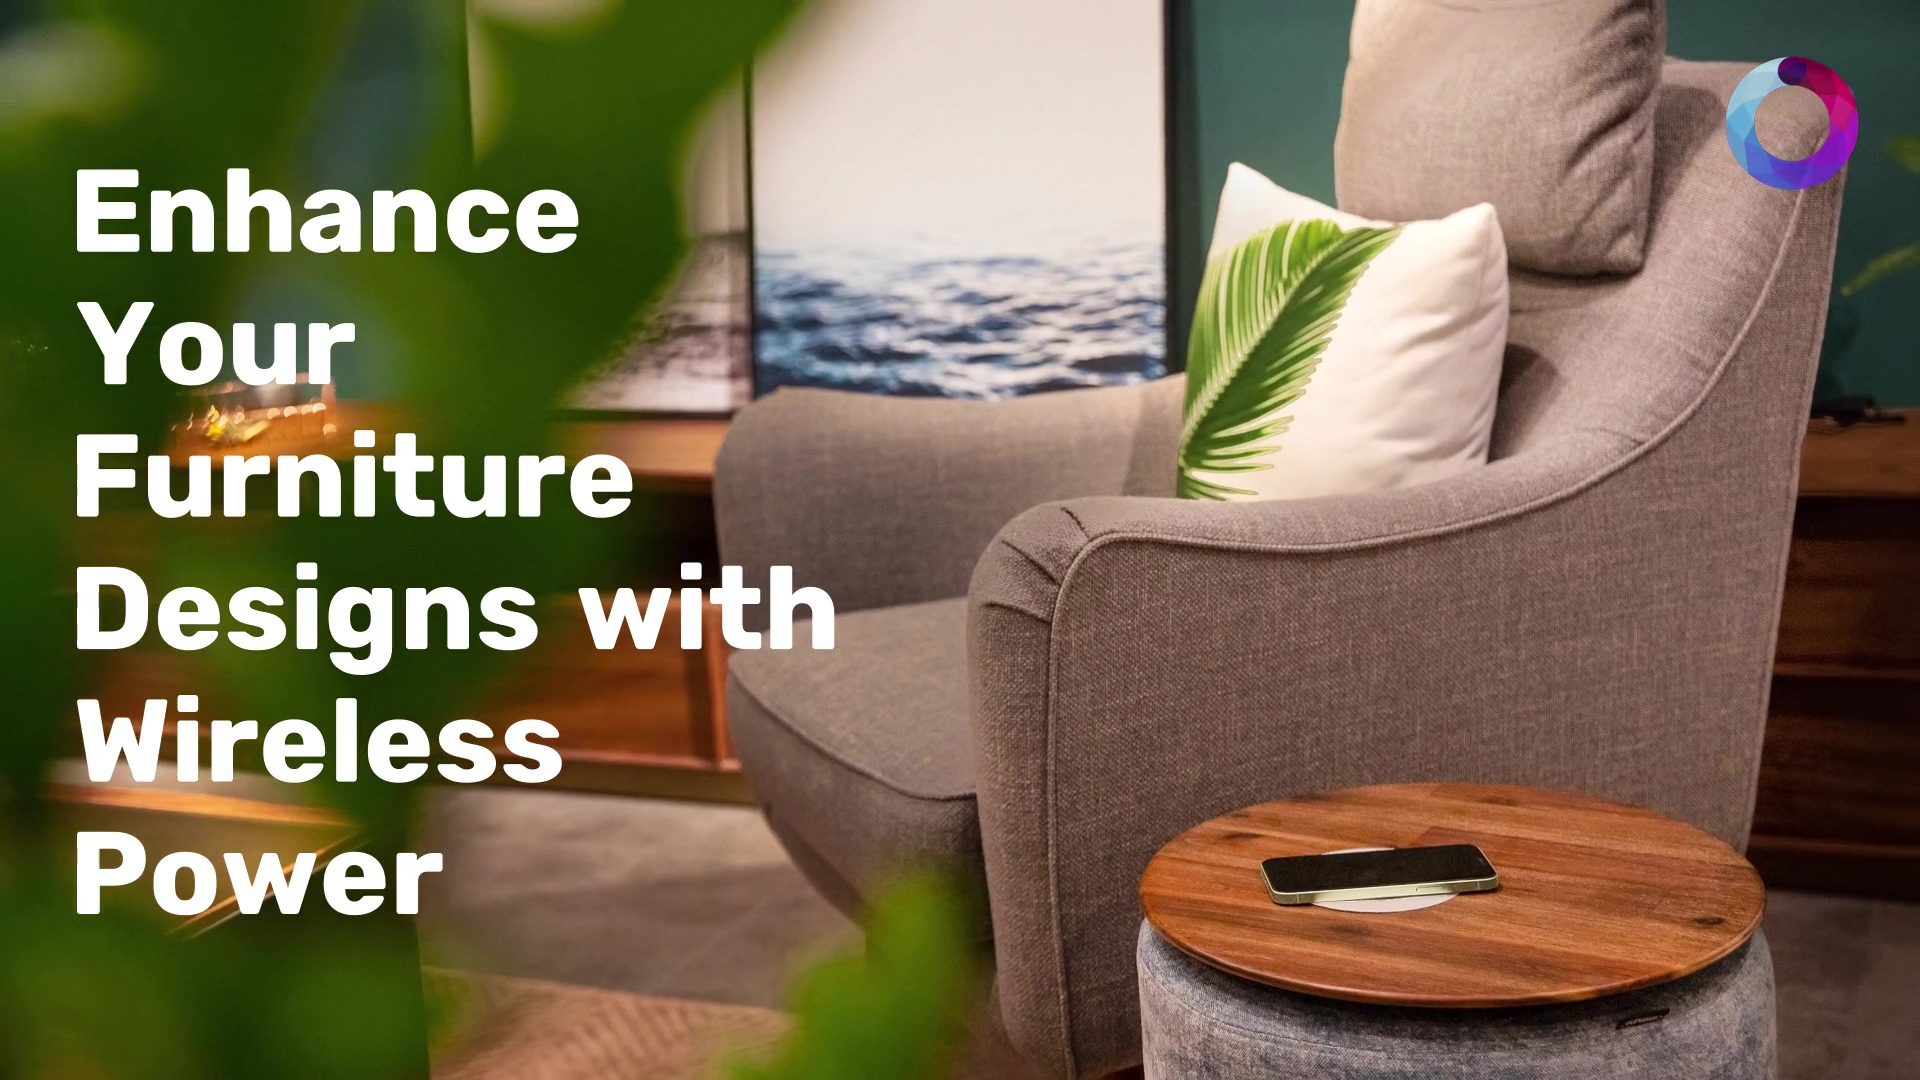 ONE POINTECH -  Enhance Your Furniture Designs with Wireless Power New